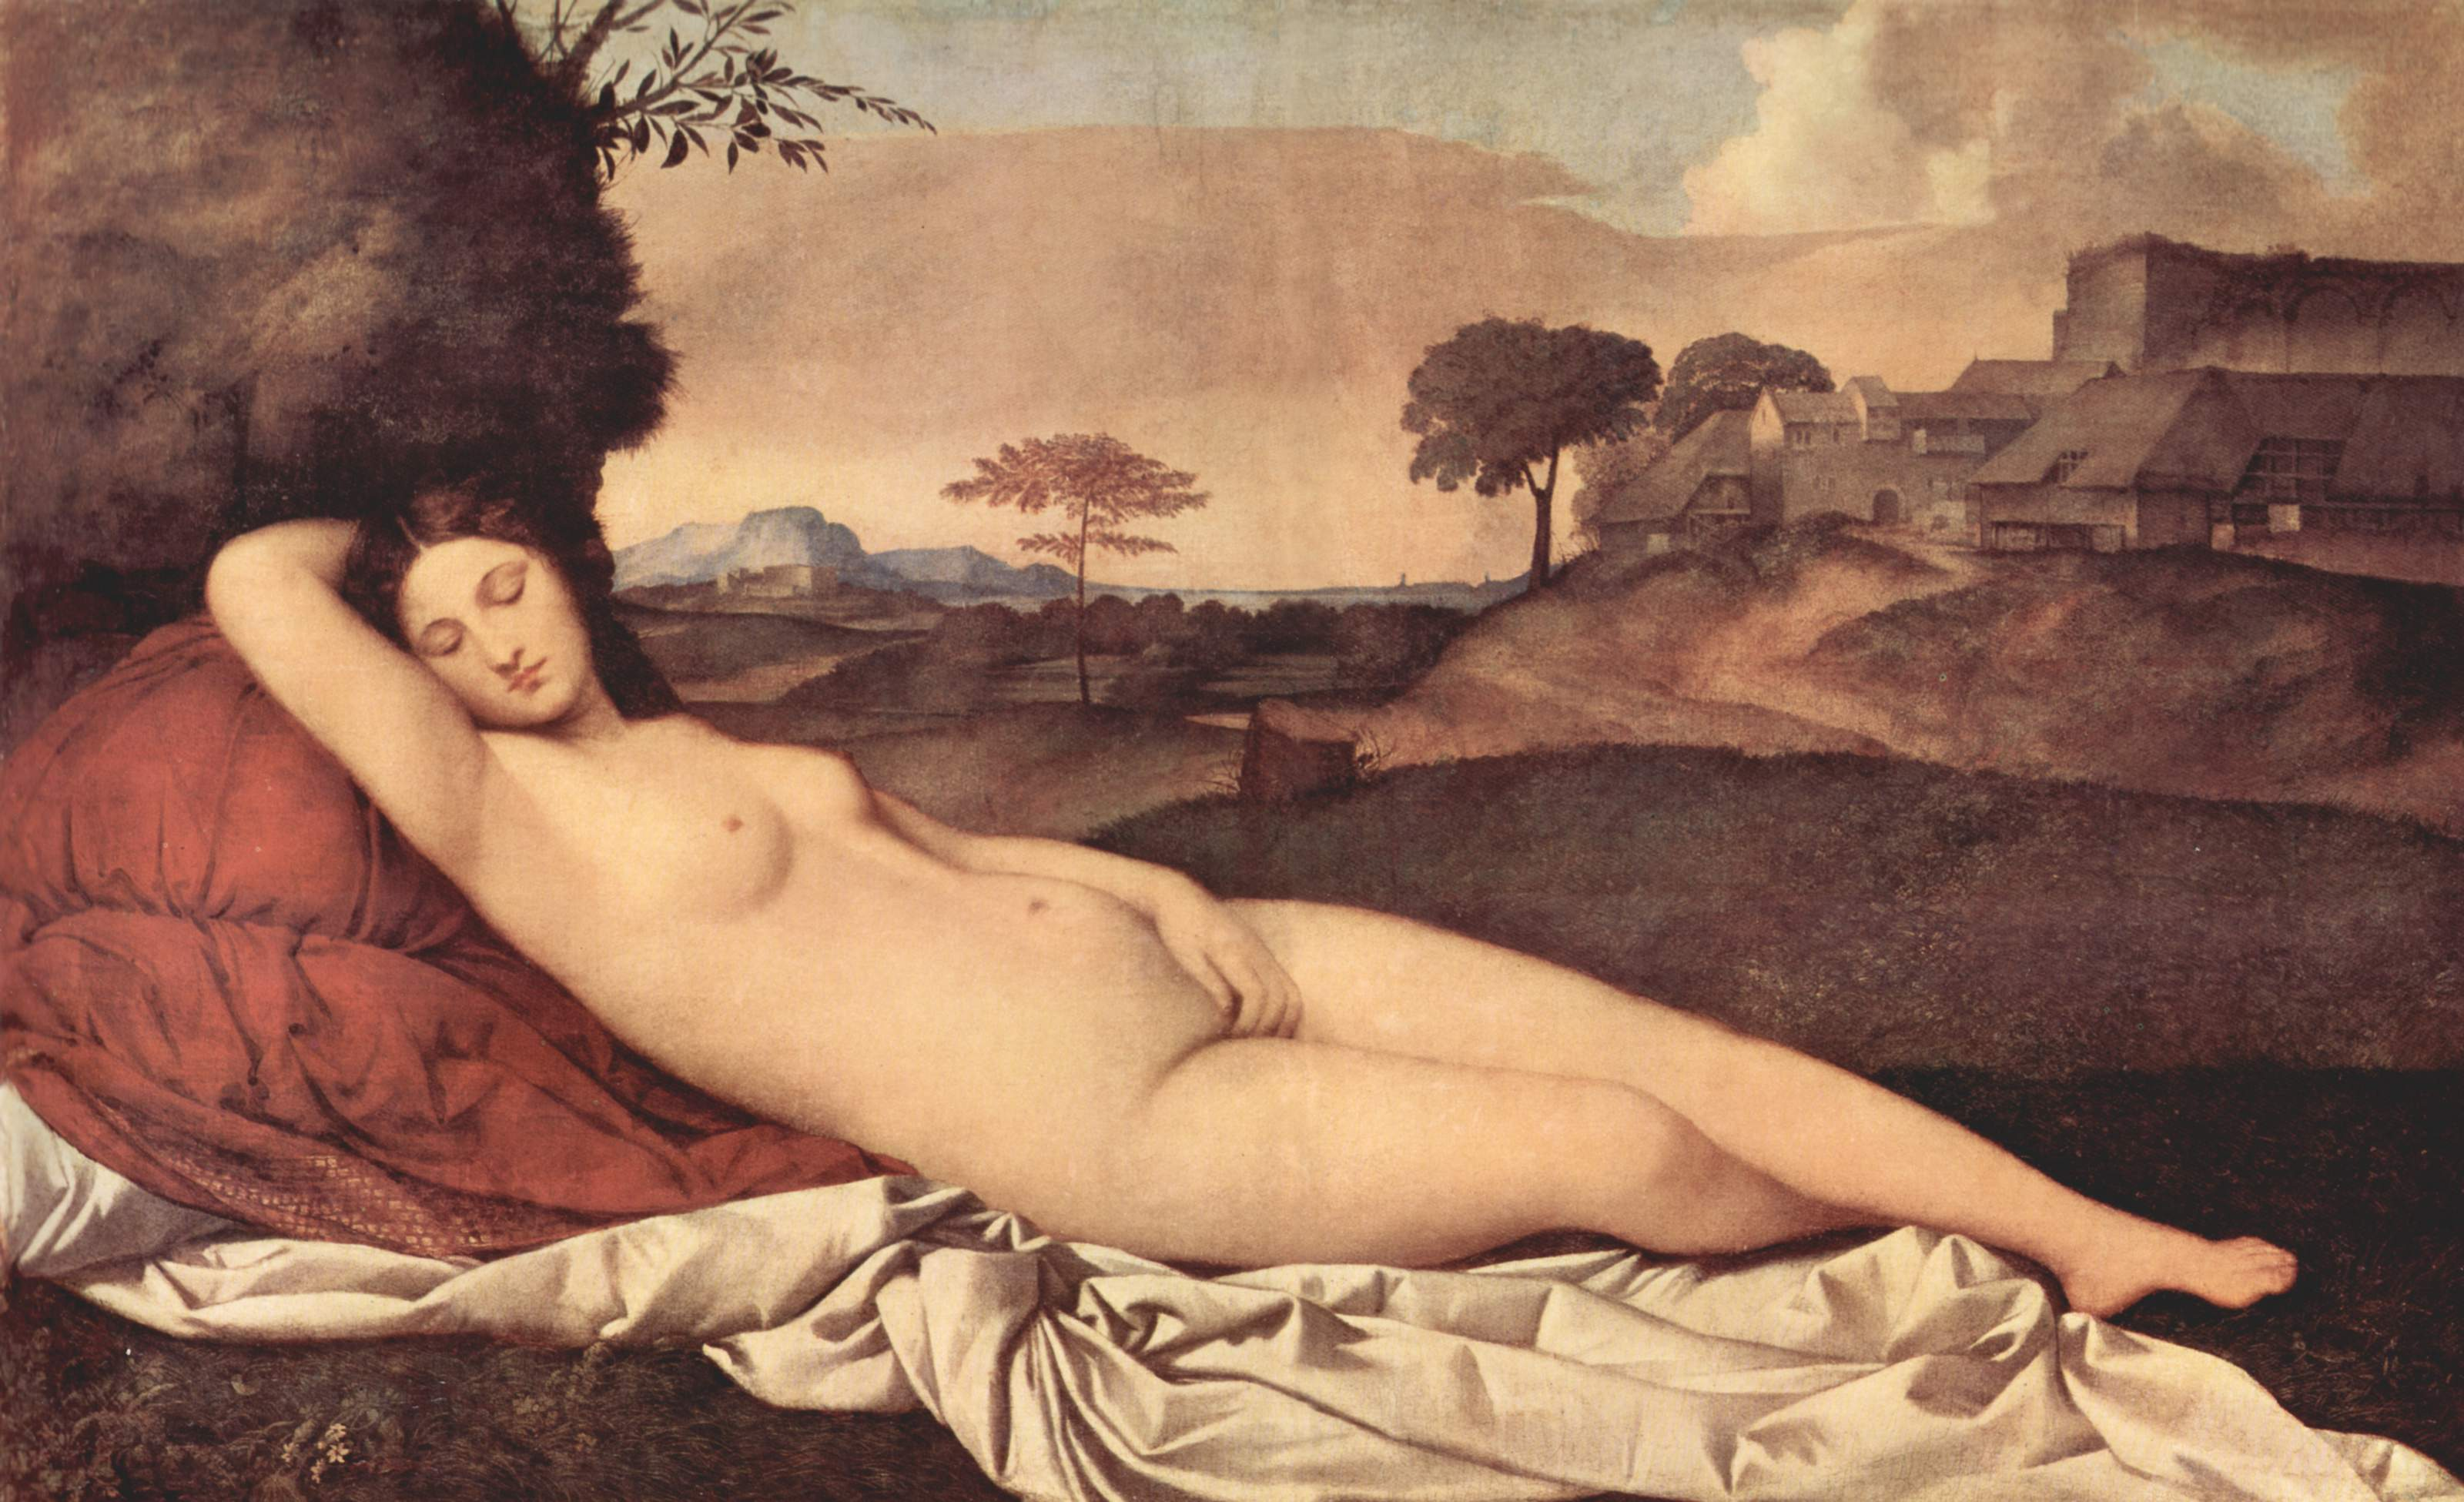 http://upload.wikimedia.org/wikipedia/commons/2/2d/Giorgione_054.jpg